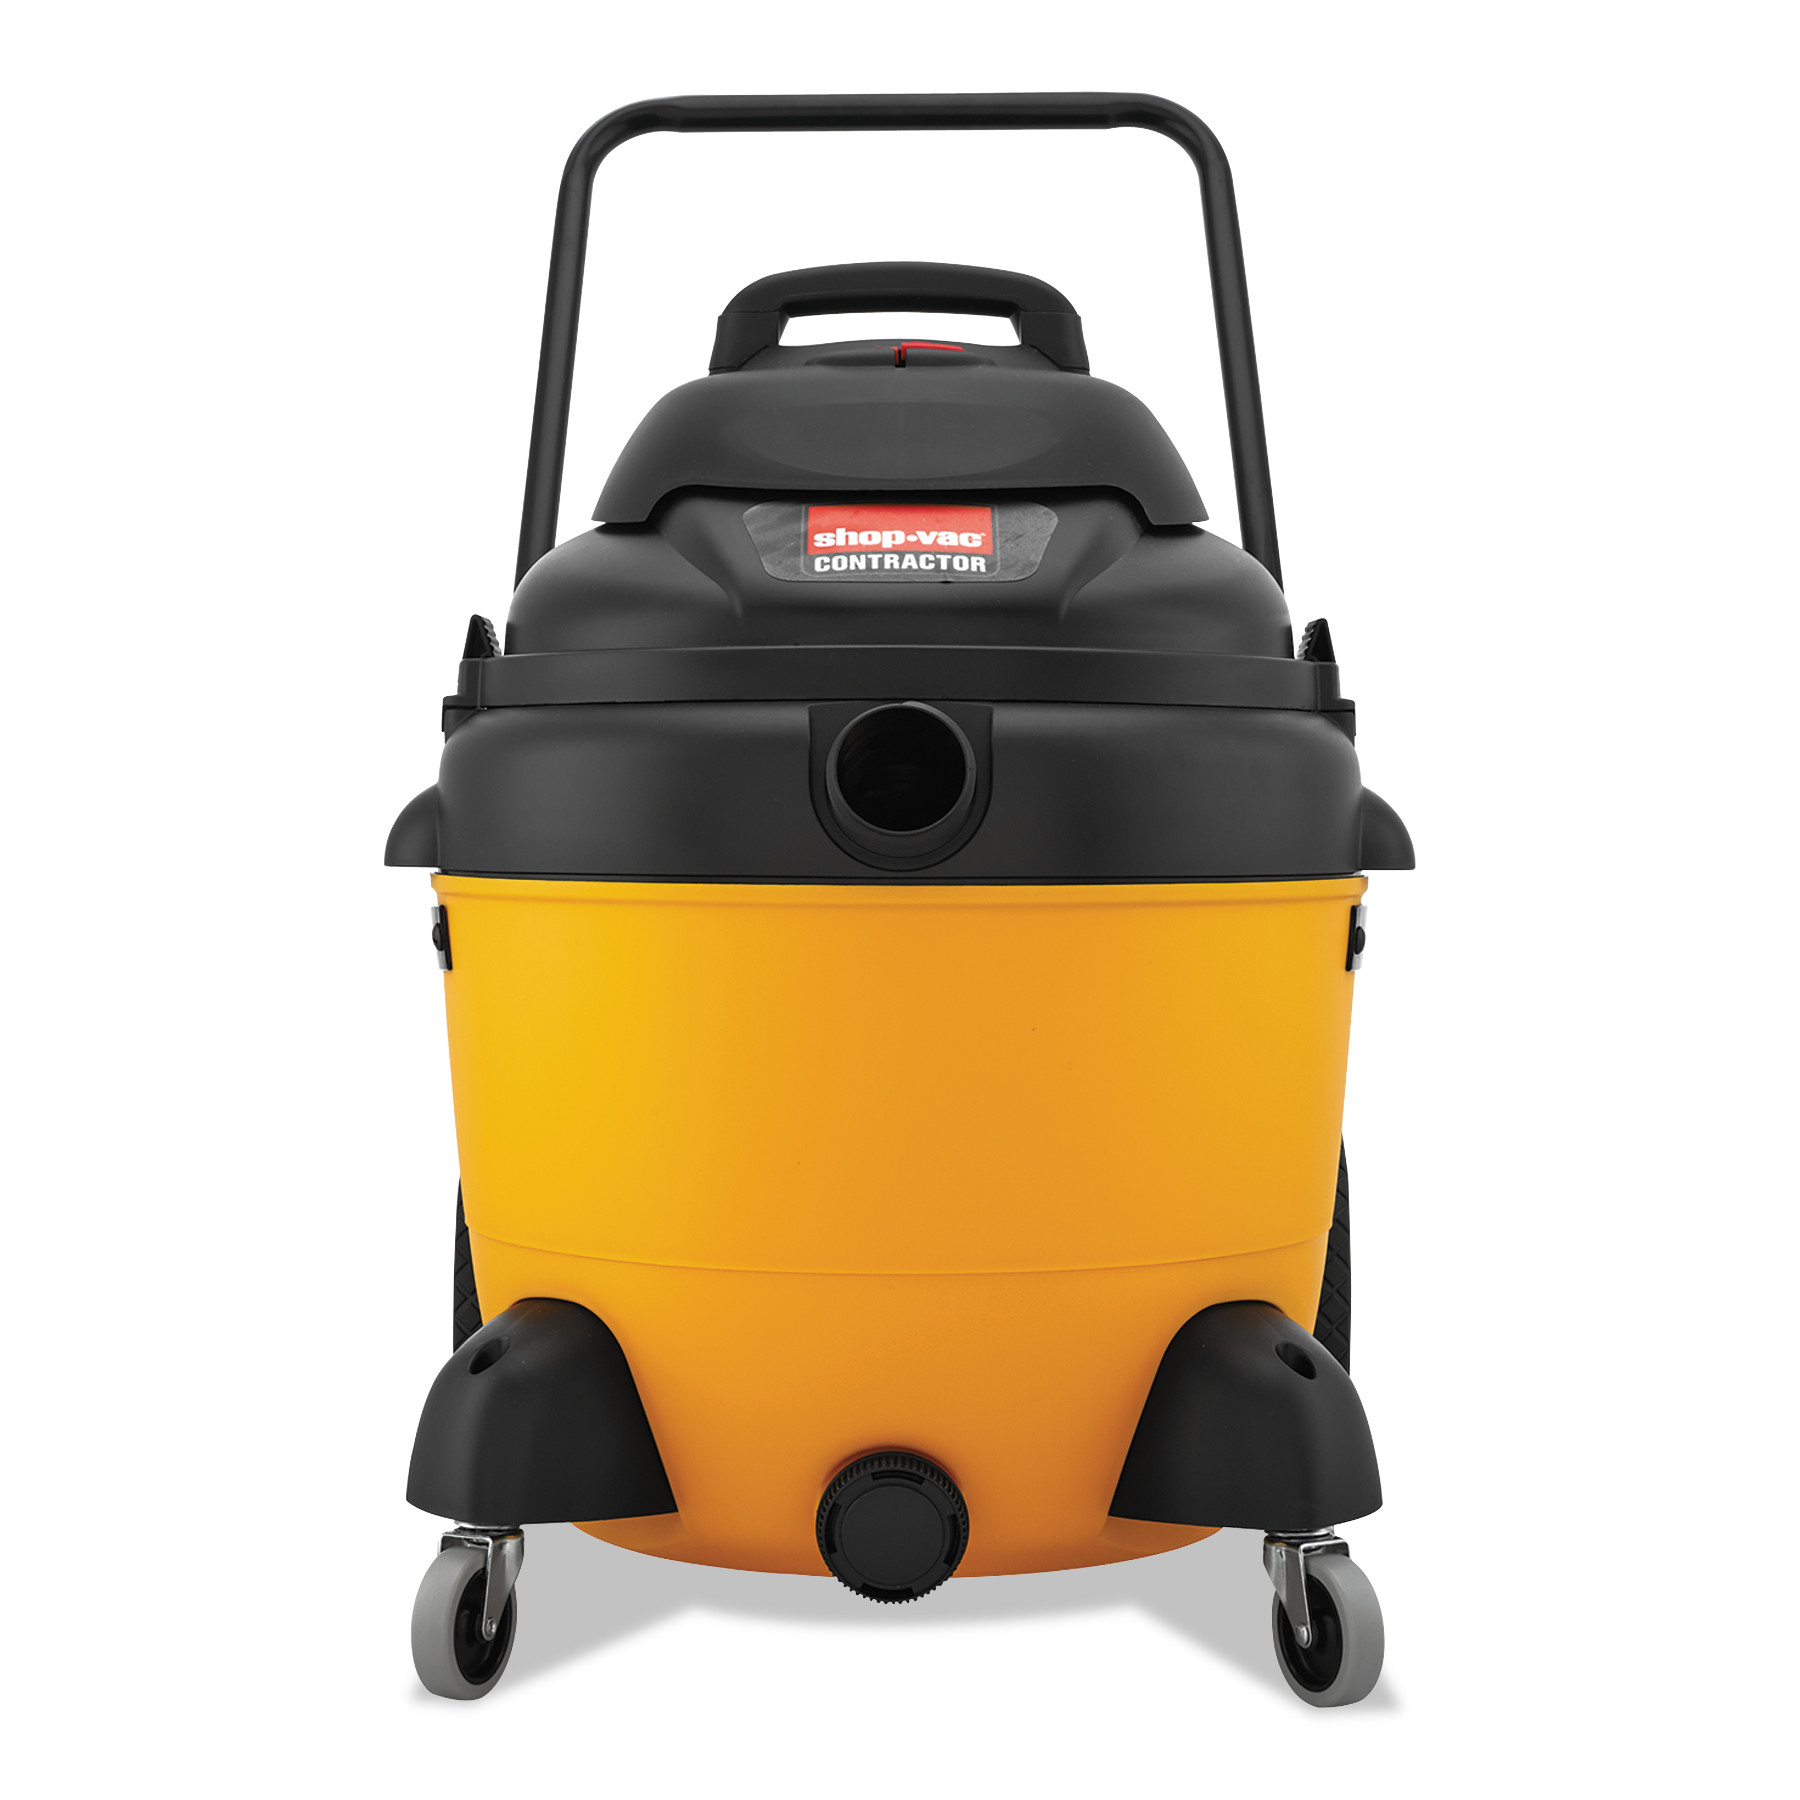 Shop-Vac Right Stuff Wet/Dry Vacuum, 12 Amps, 39lbs, Yellow/Black